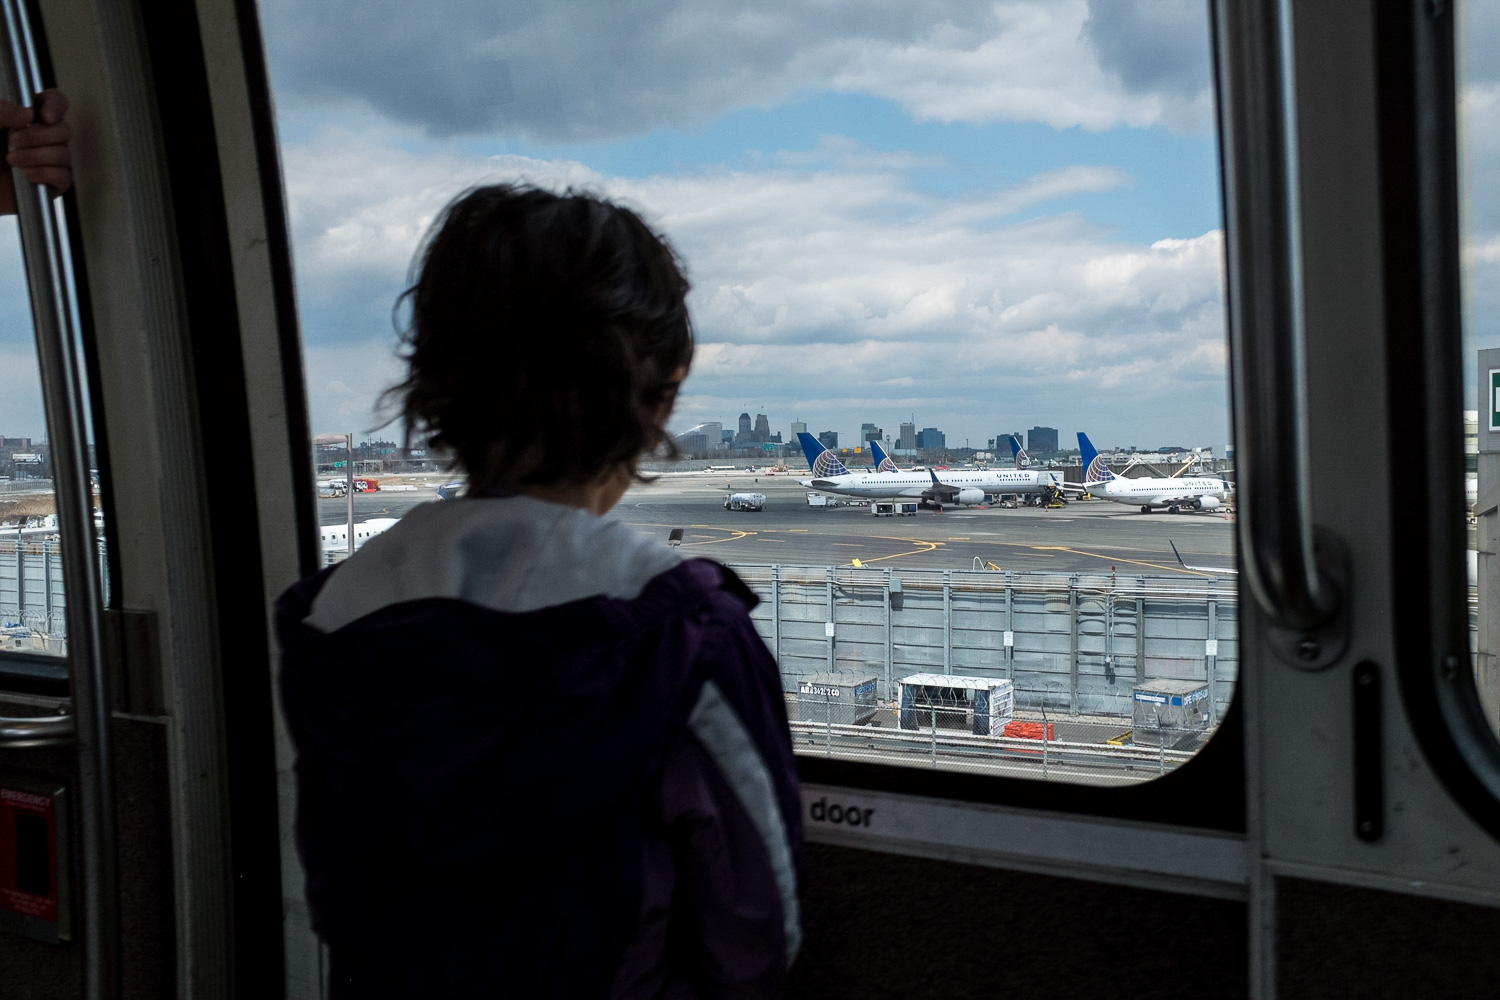 looking at airplanes